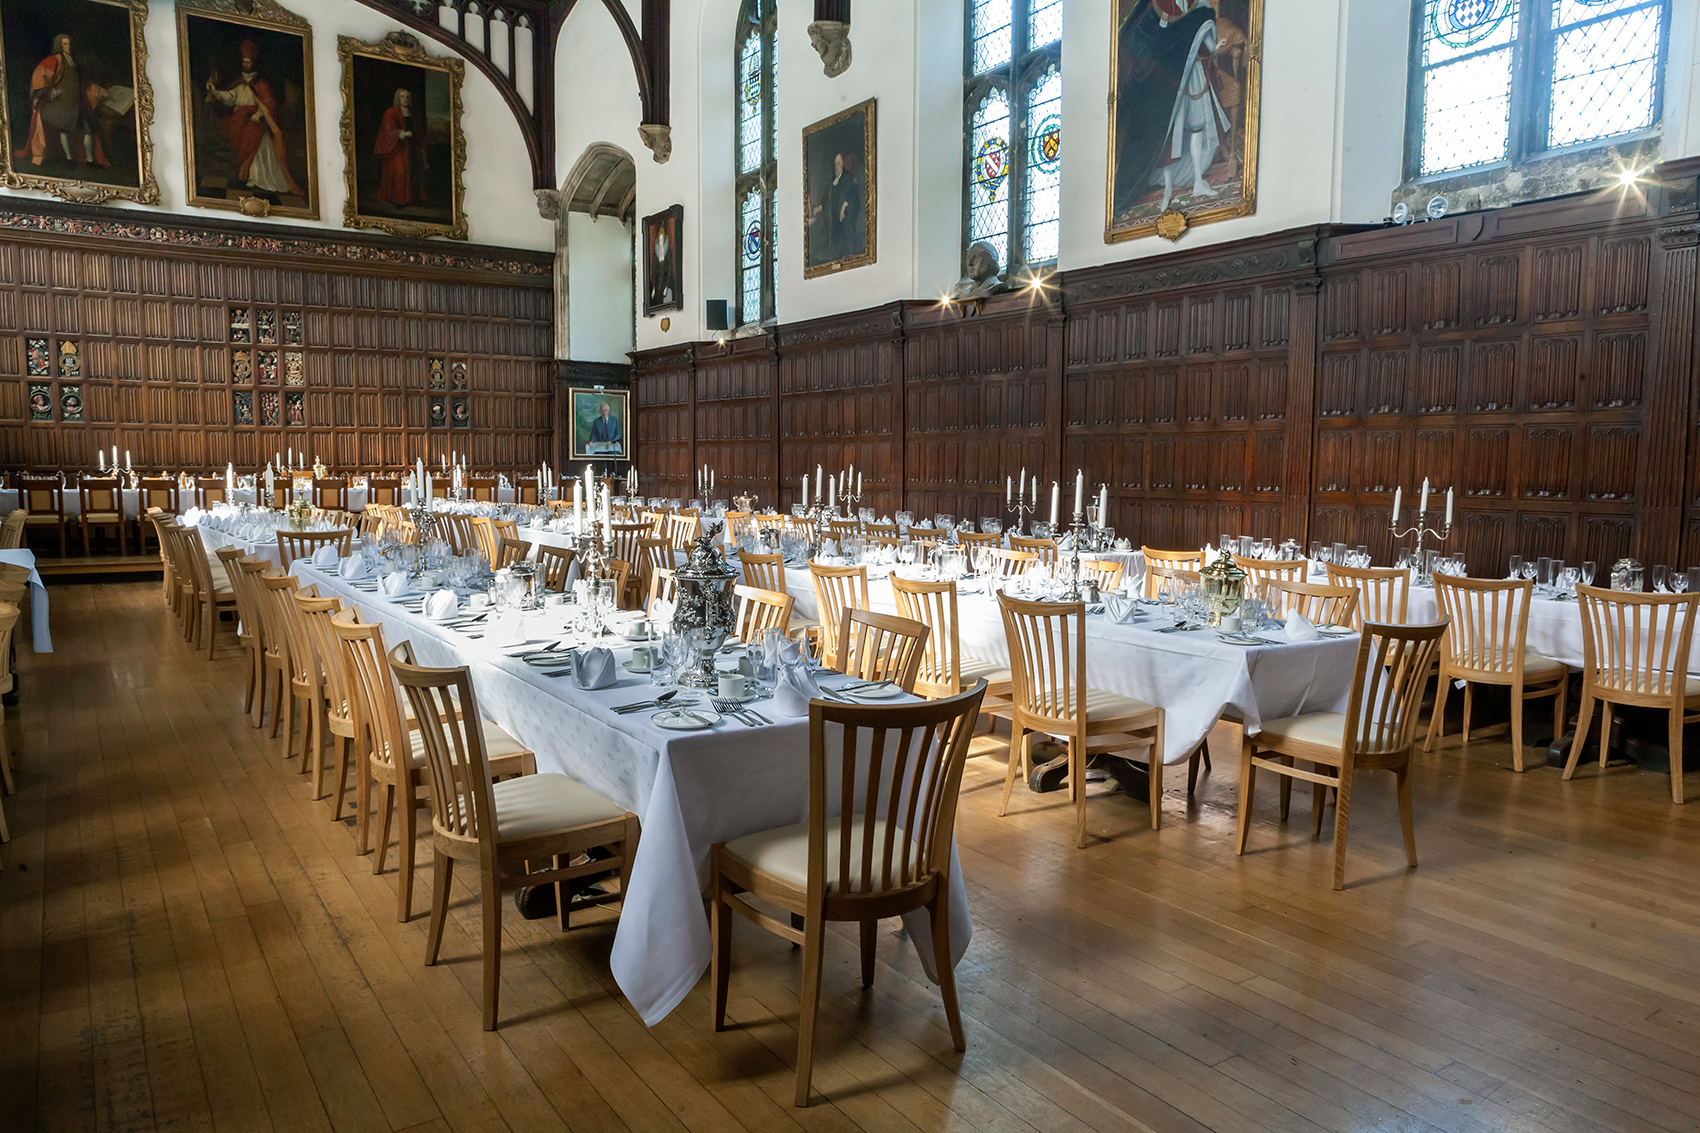 Barnsley Workshop chairs in the dining hall, Magdalen College, Oxford